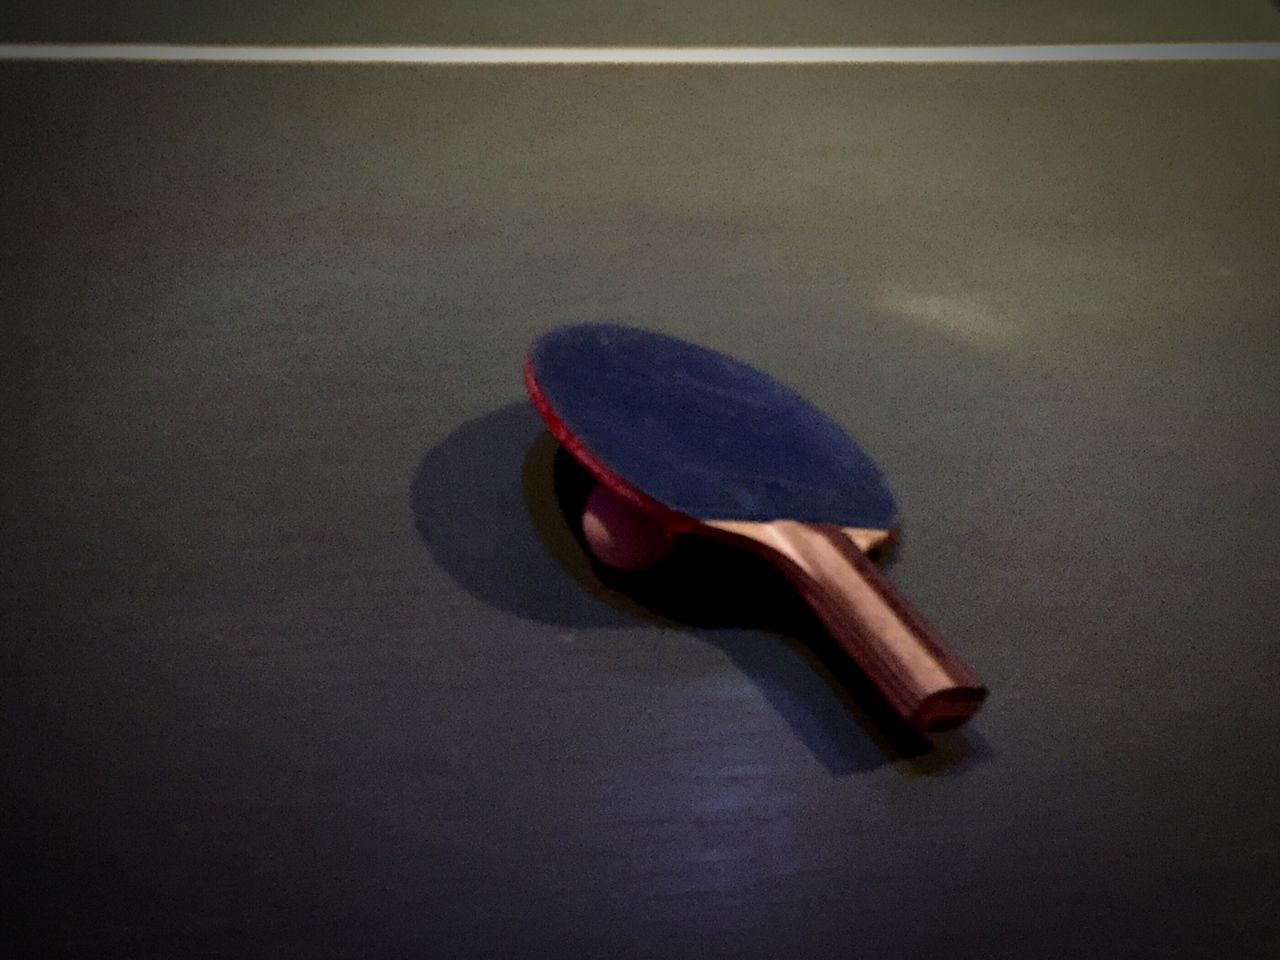 indoors, no people, sport, musical instrument, close-up, racket sport, day